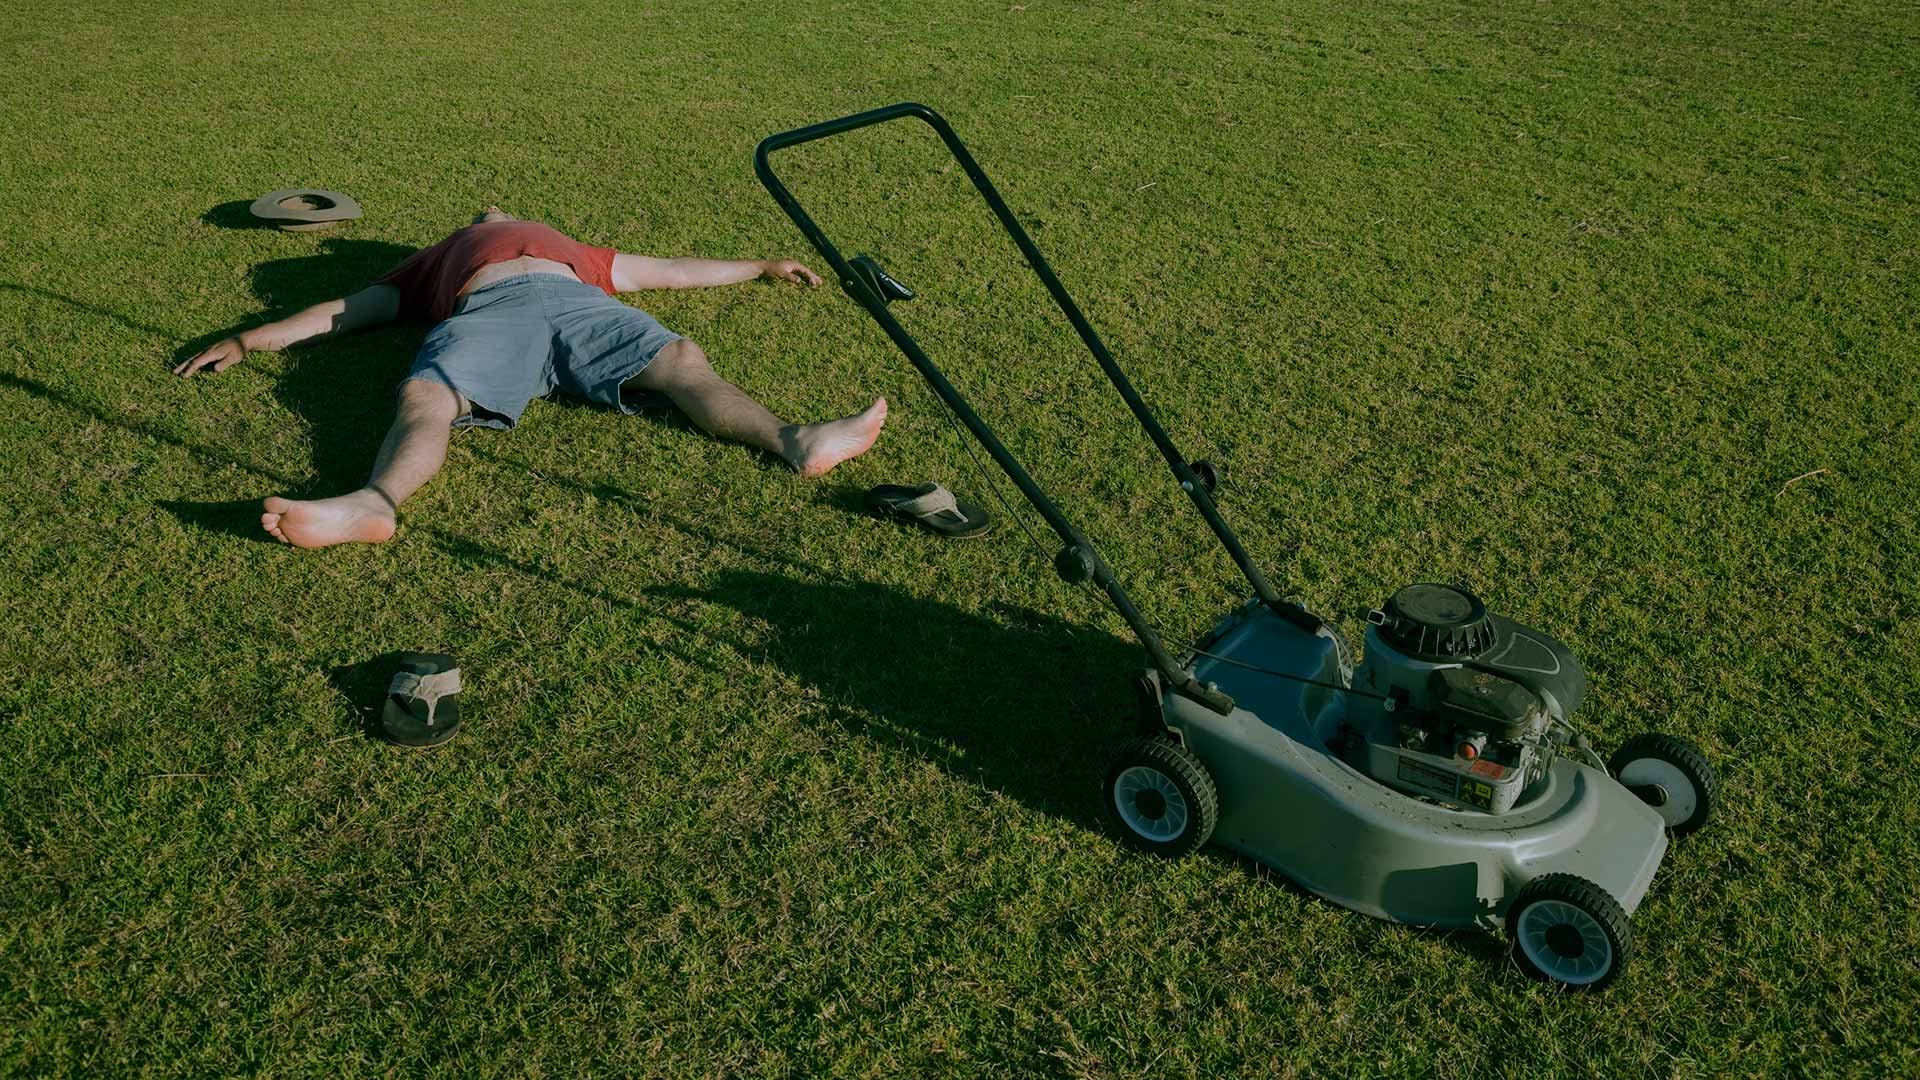 Weekly Lawn Maintenance Package, $40. Showing lawn mower on grass next to exhausted home owner